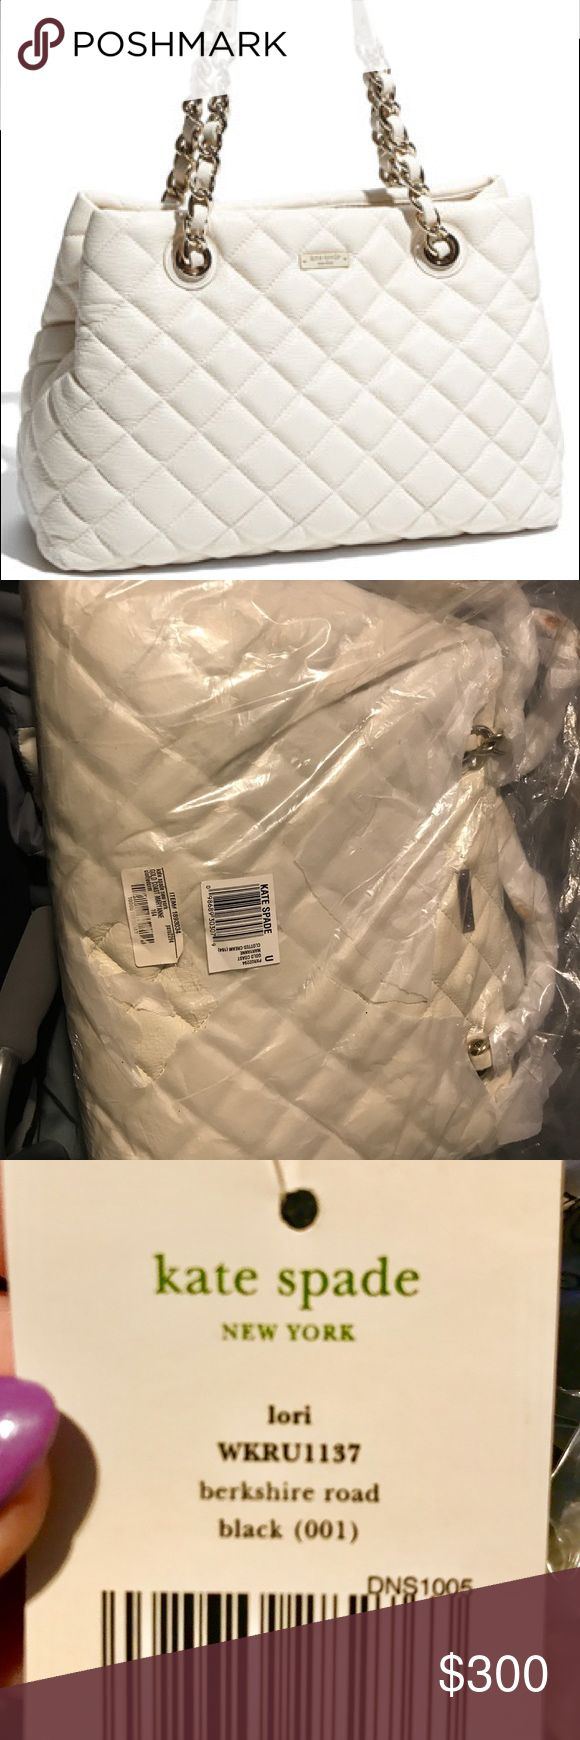 Kate Spade Rare Maryanne Gold Coast Purse NWT Brand new! Still in plastic wrap with tags. Never been opened or used! NWT Color: Clotted Cream kate spade Bags Totes